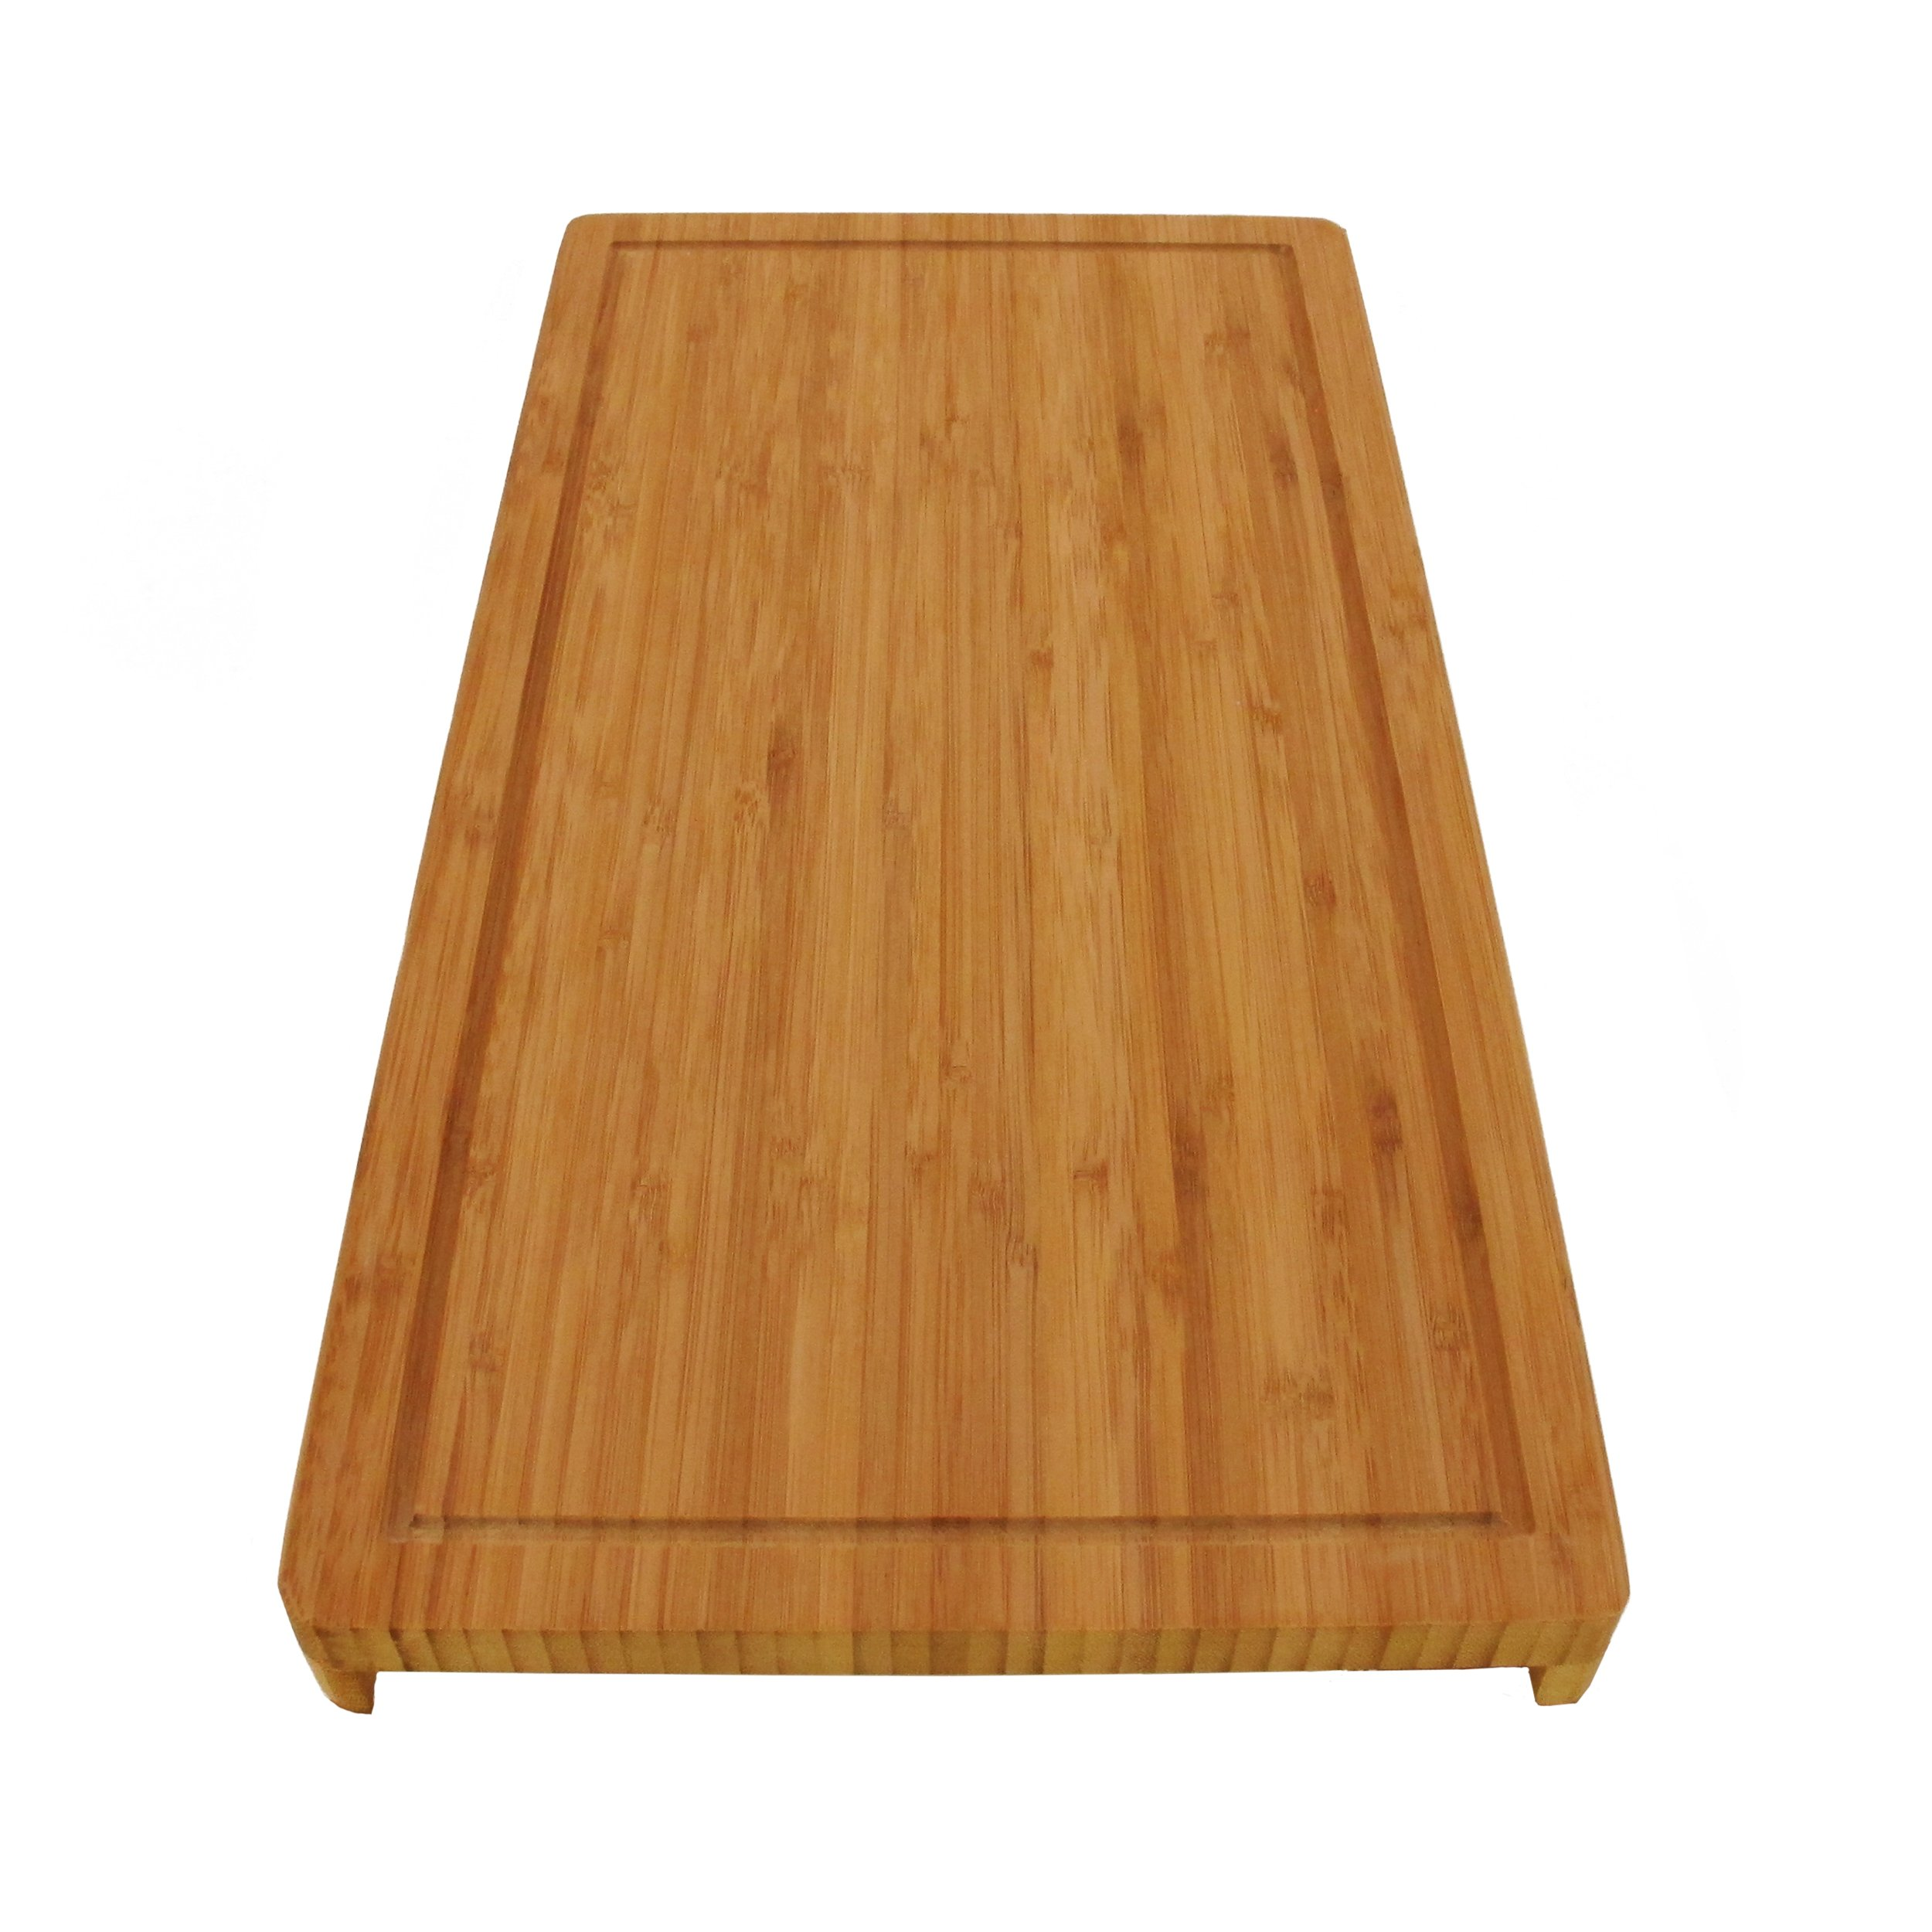 """BambooMN Brand Bamboo Griddle Cover/Cutting Board for Viking Cooktops, Vertical Cut with Raised Design, Small (10.25""""x19.8""""x1.50"""")"""